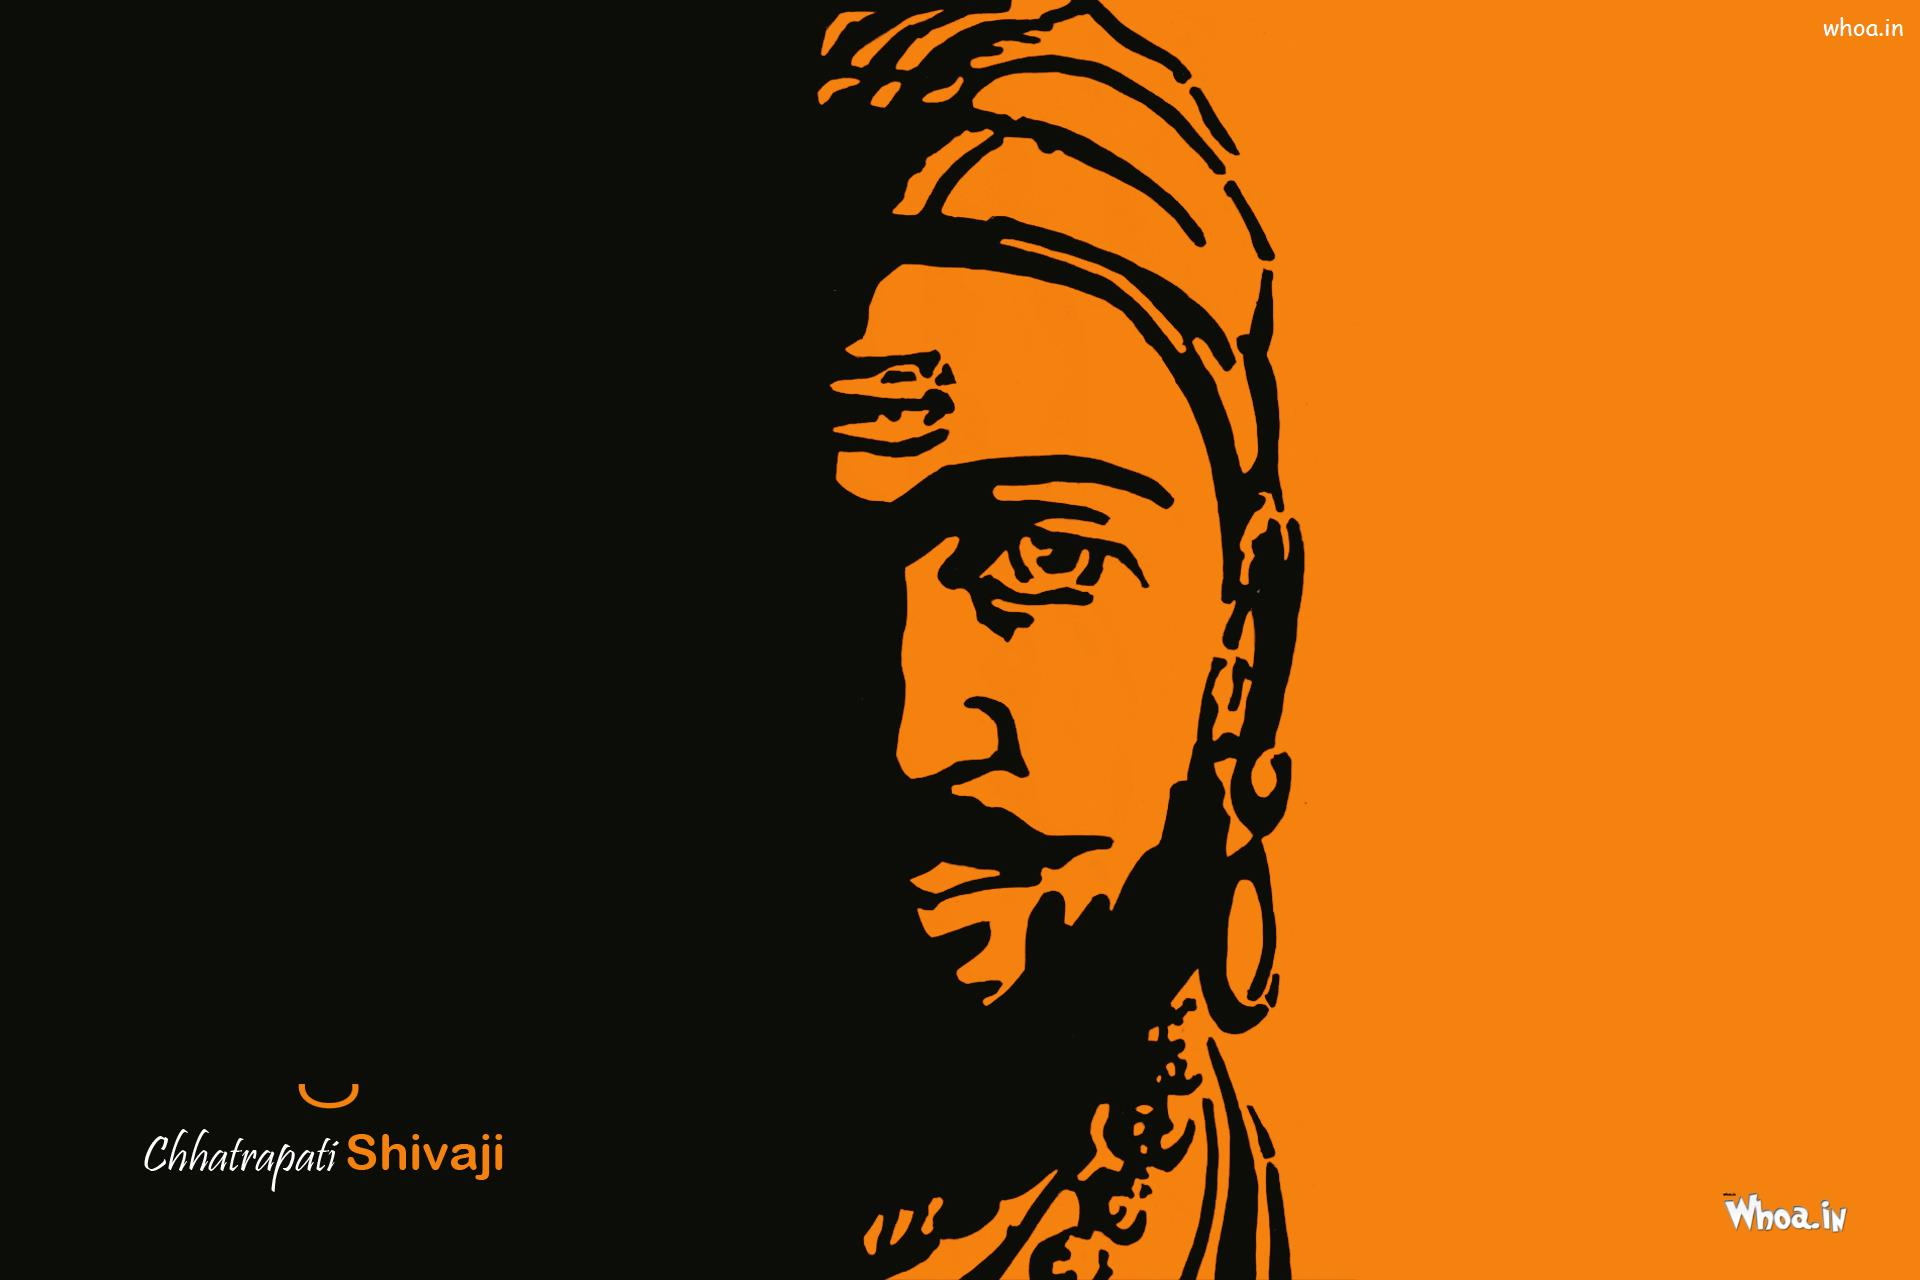 Hd wallpaper shivaji maharaj - Hd Wallpaper Shivaji Maharaj 1